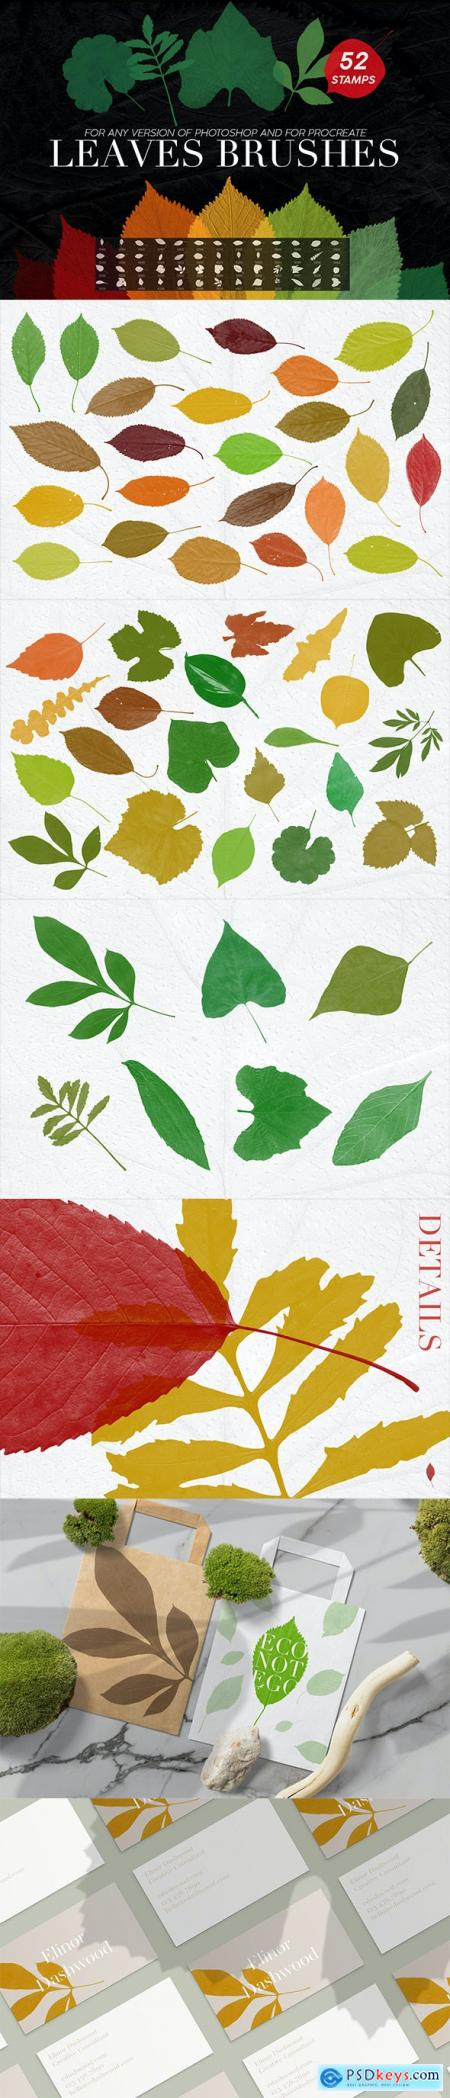 52 Leaves Photoshop Stamp Brushes 27969587